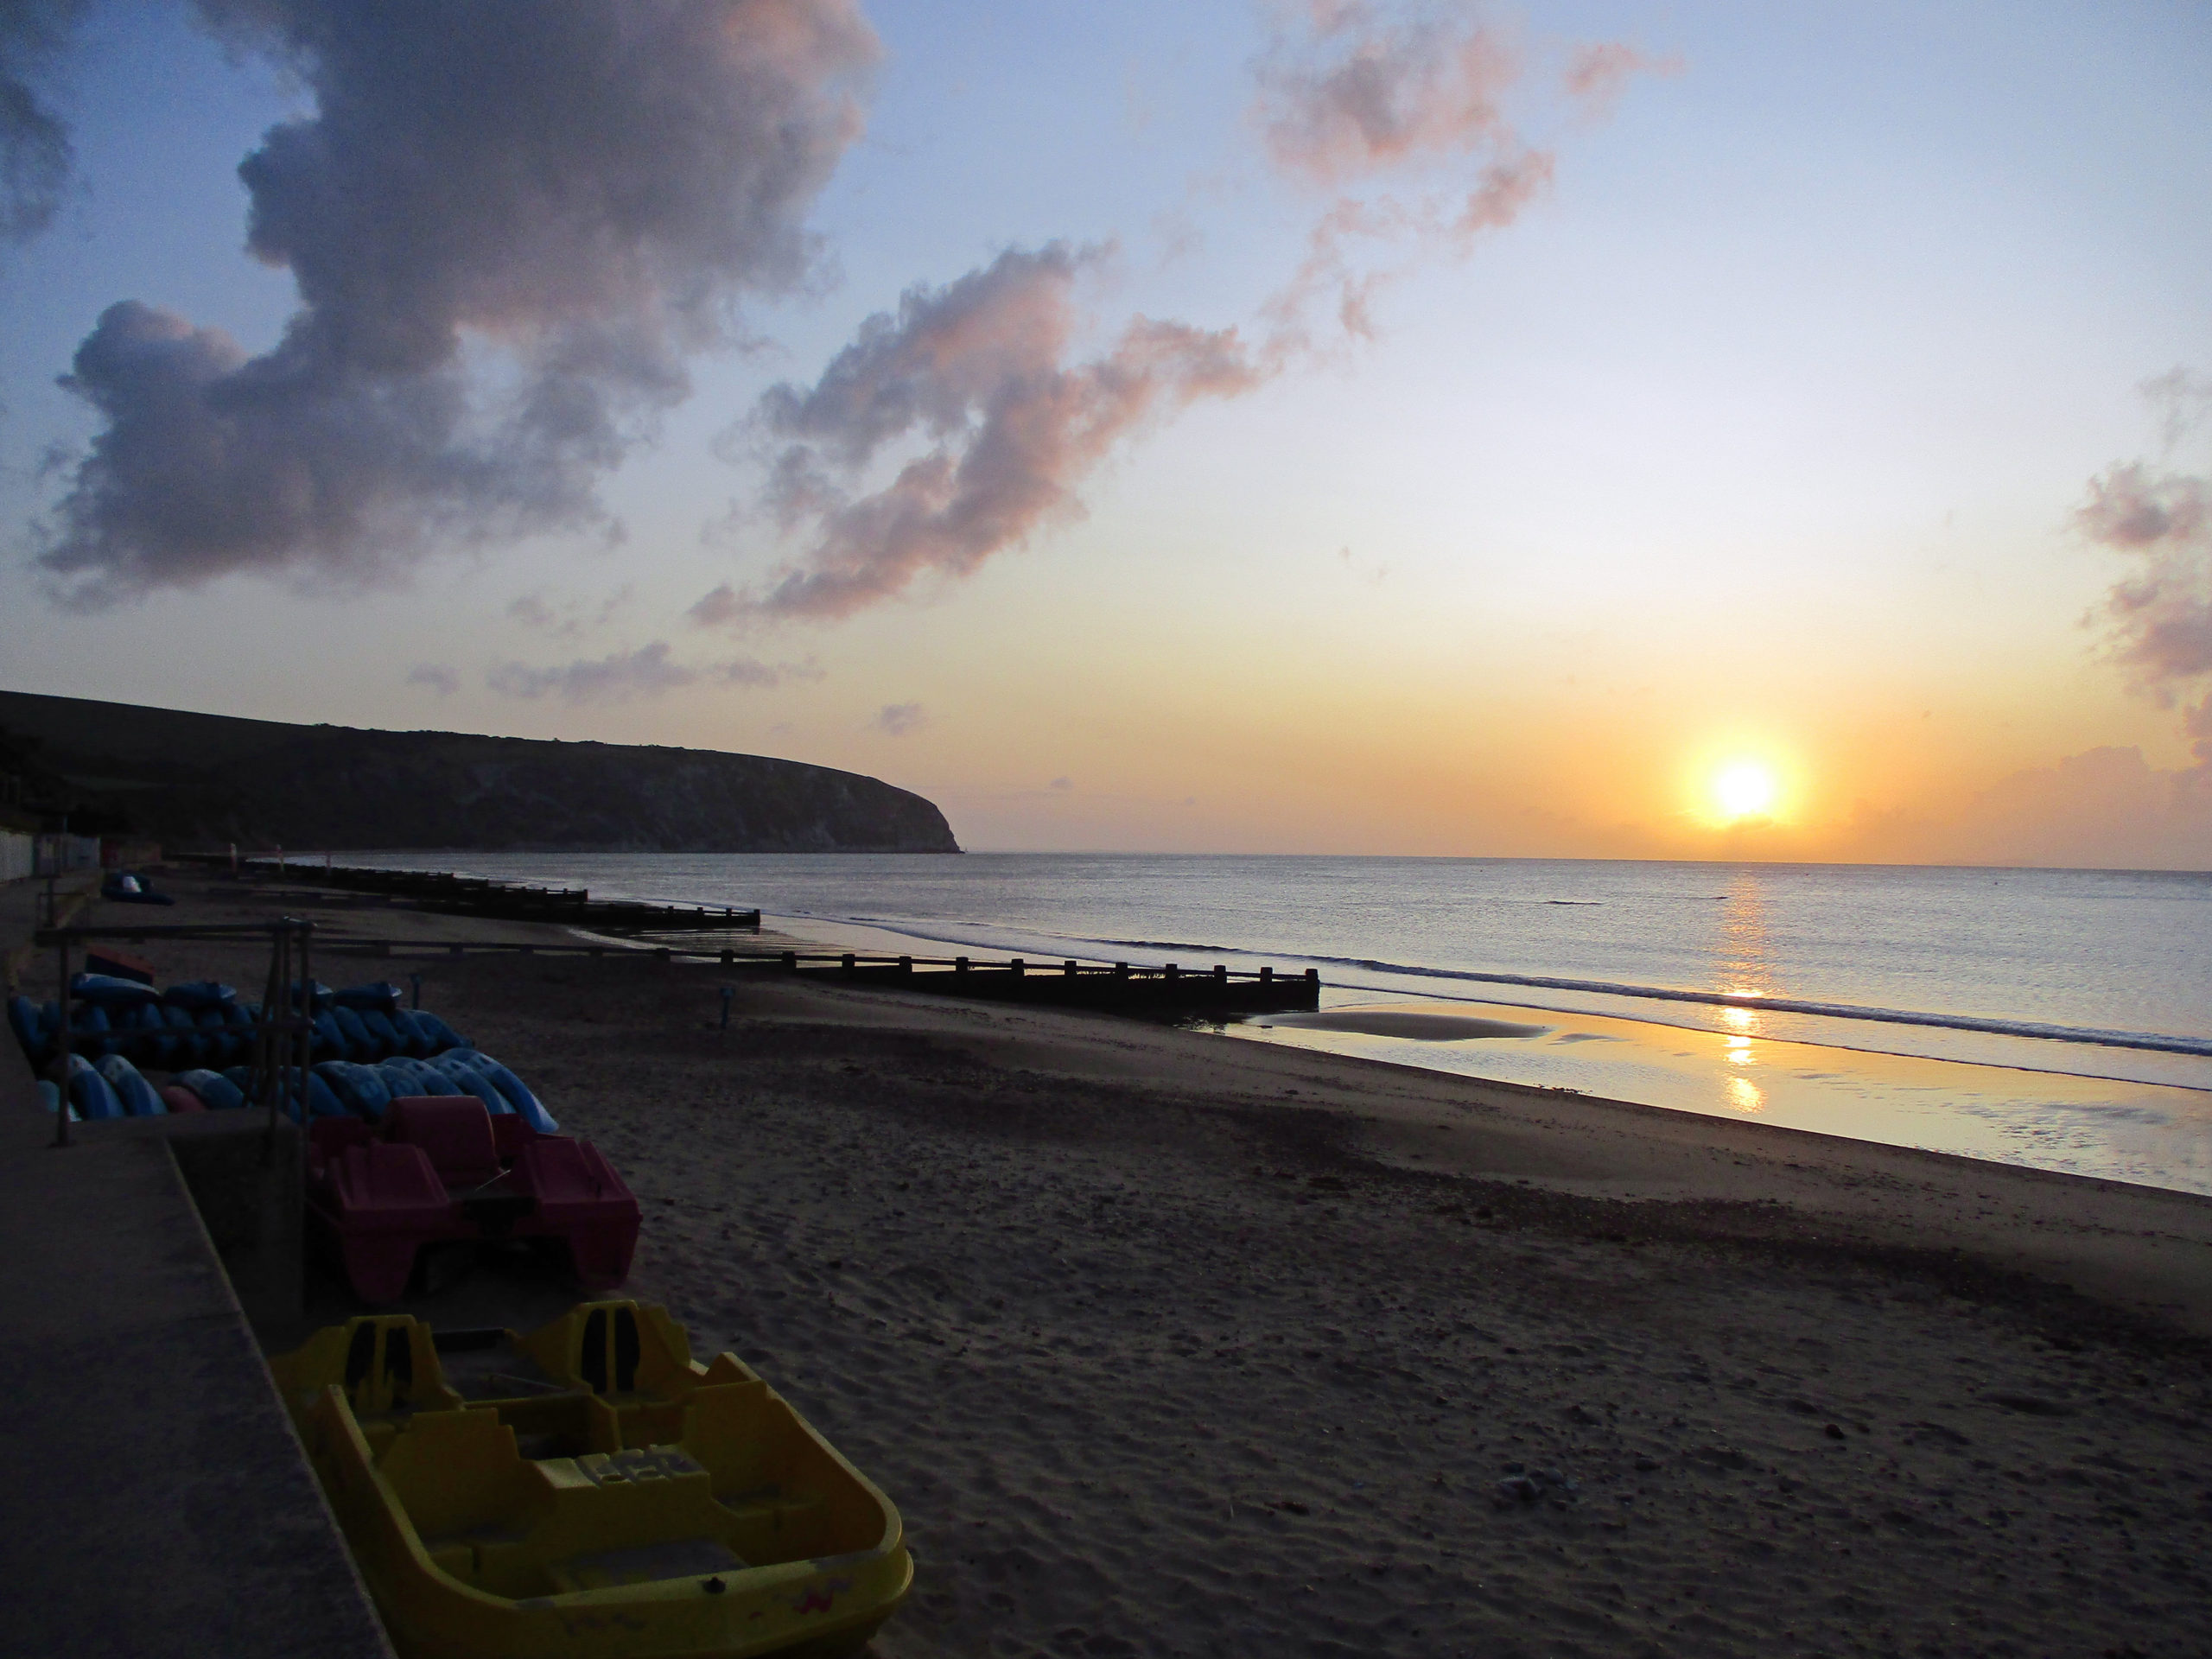 Sunrise in Swanage